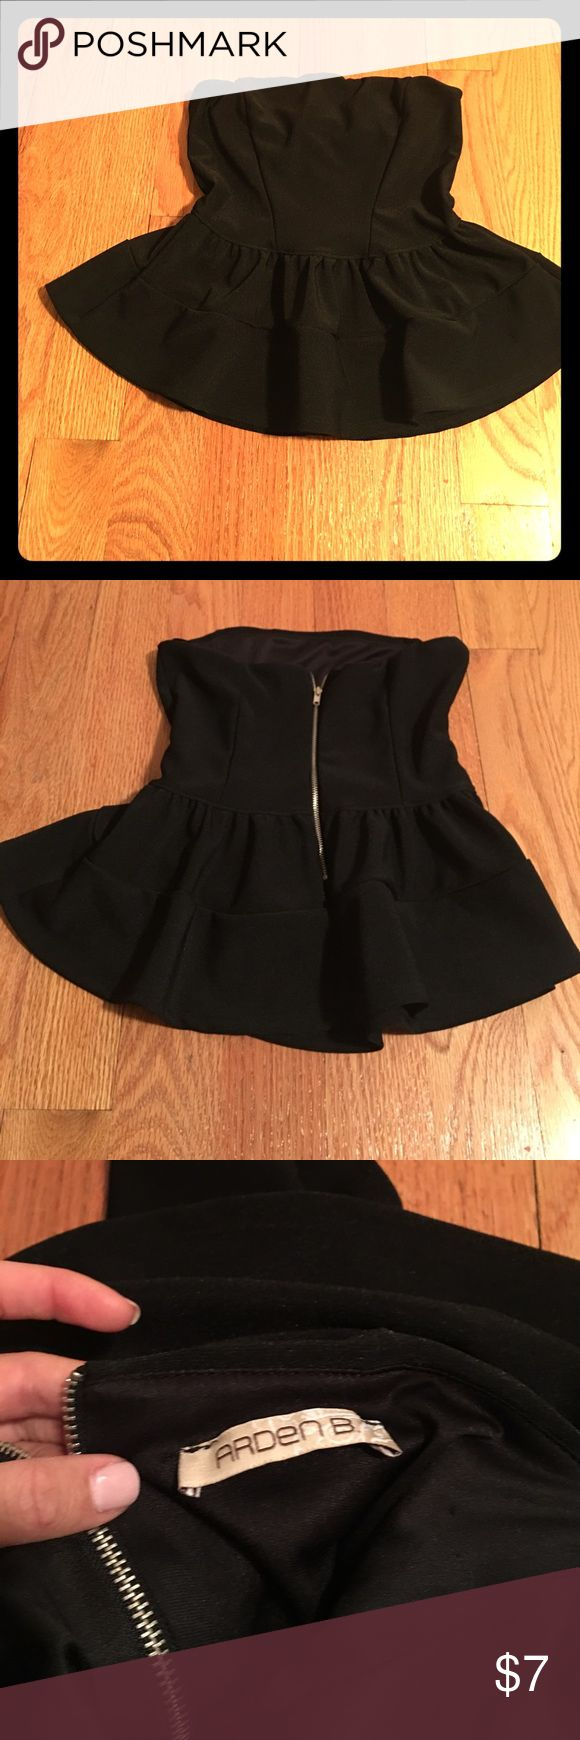 Super cute strapless black peplum top in black Super cute black peplum top in black from Arden B. In like new condition worn once. Arden B Tops Blouses